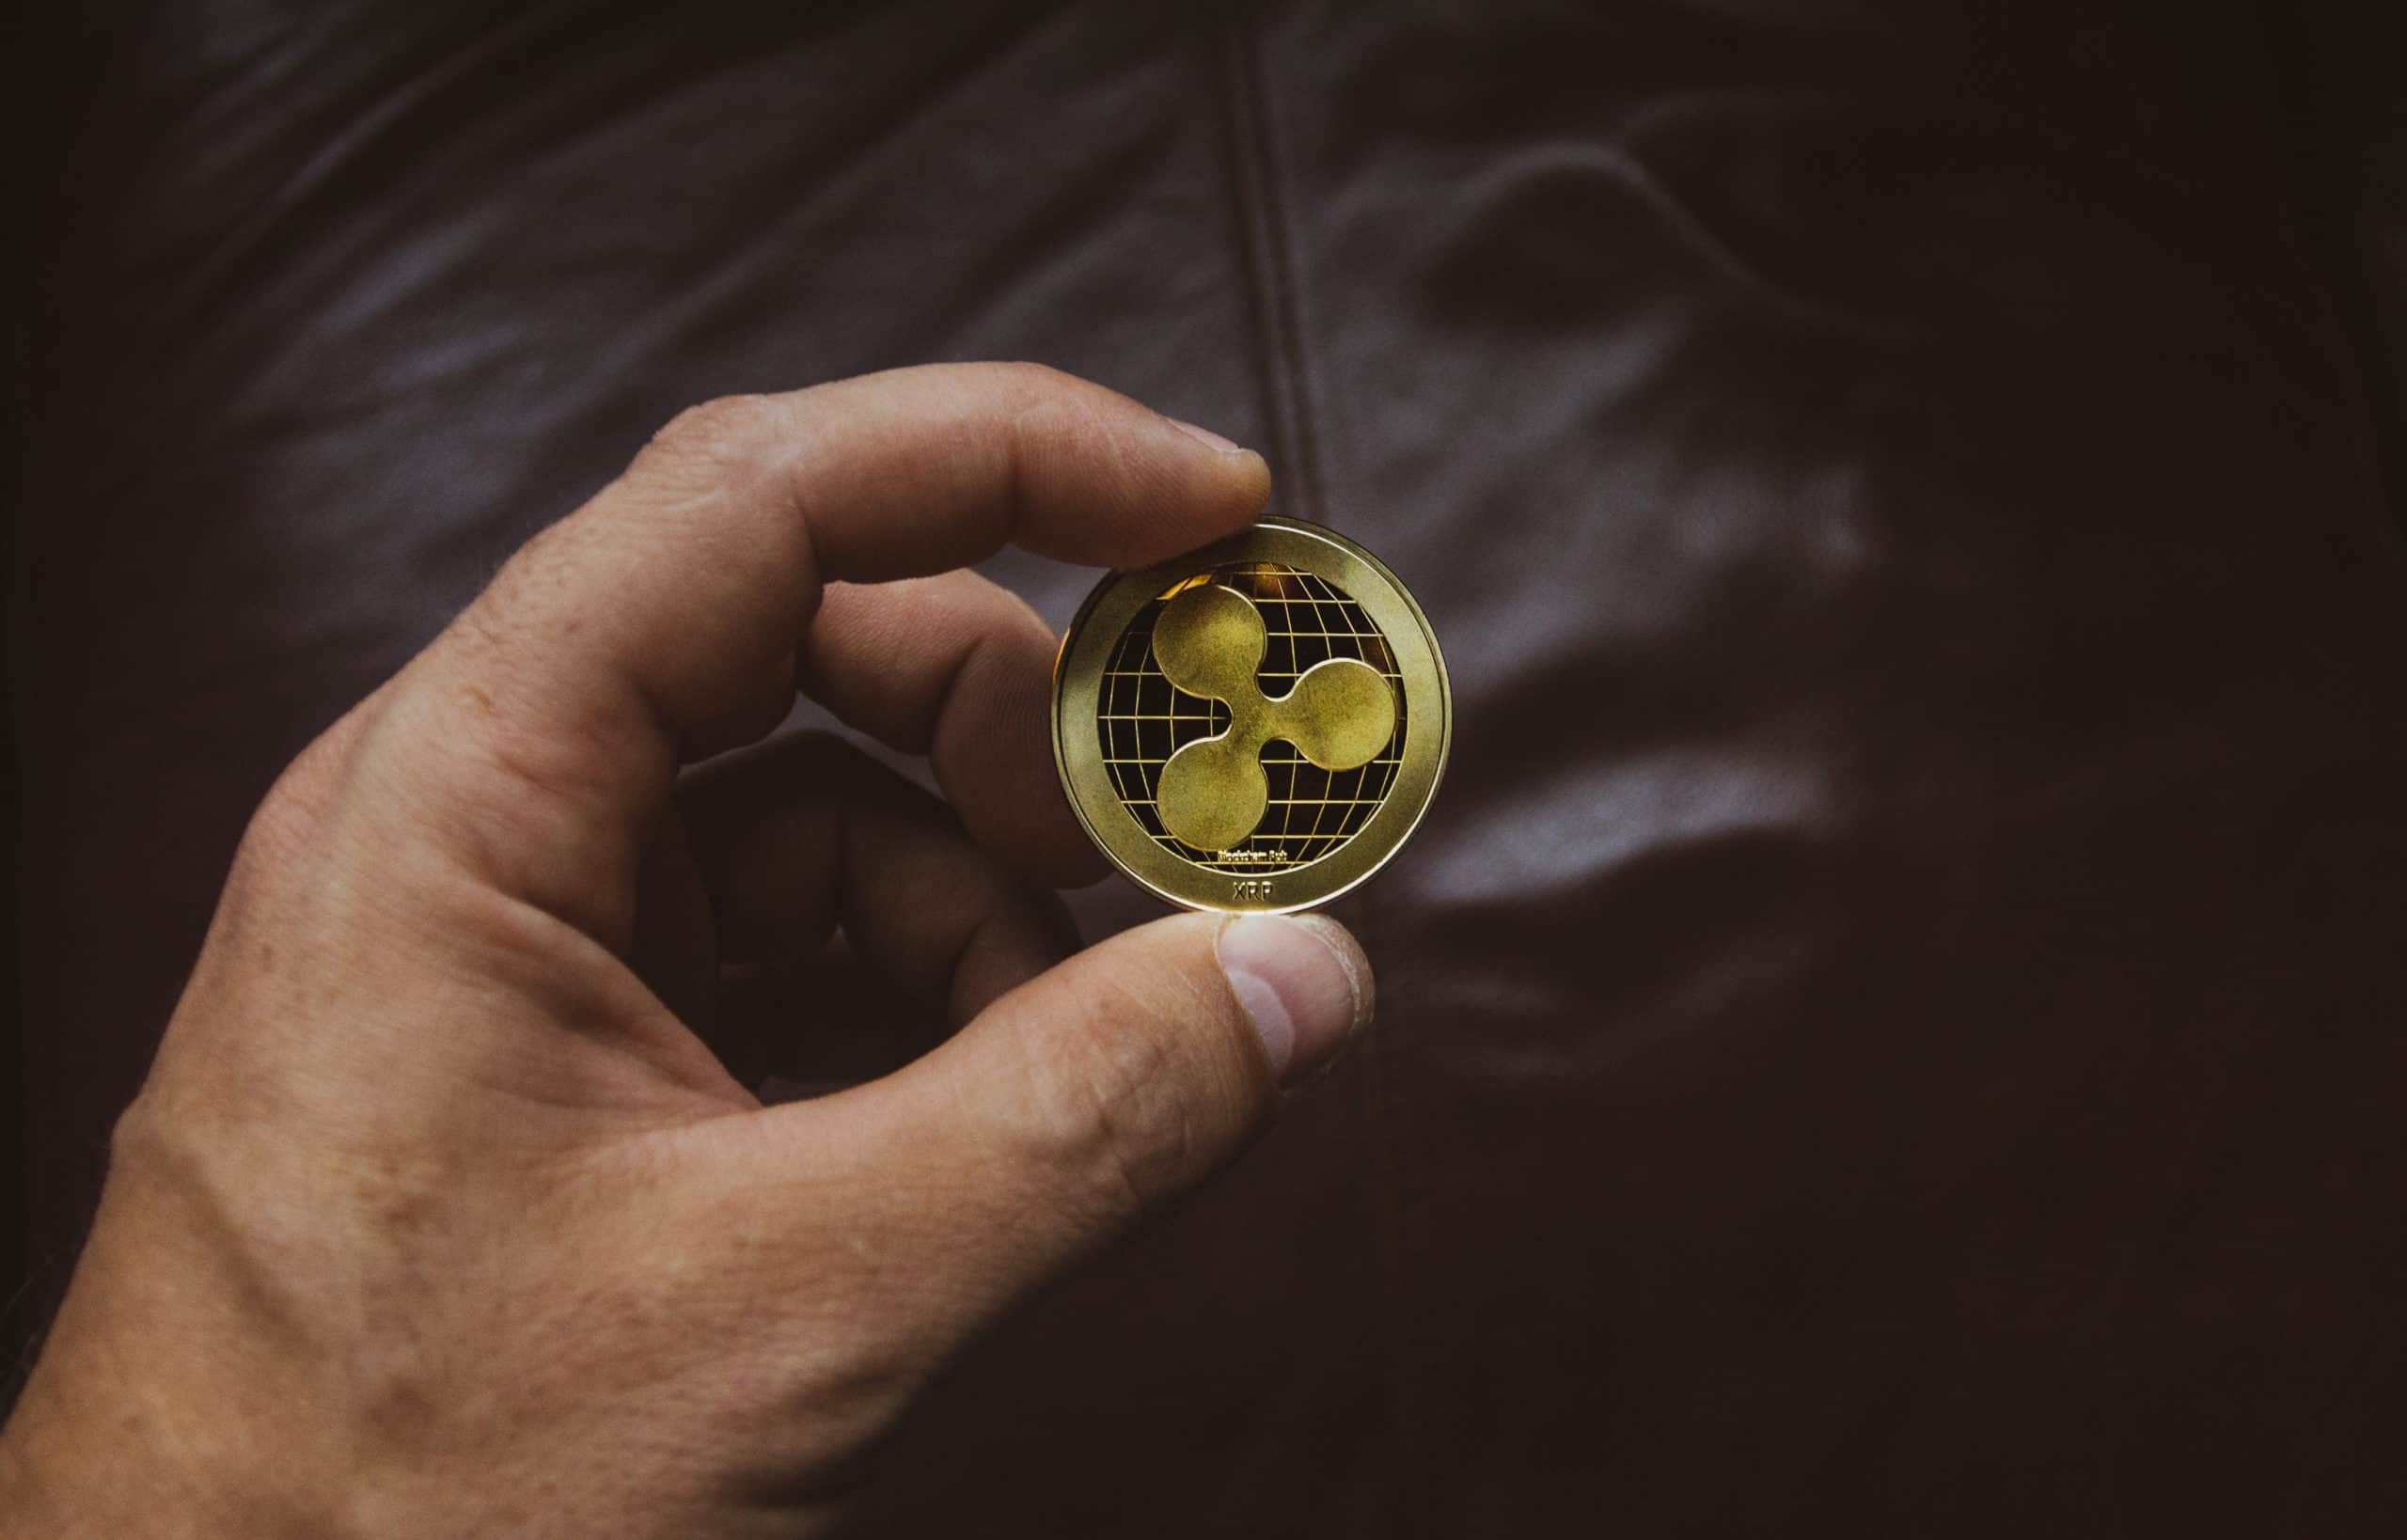 person-holding-round-gold-colored-coin